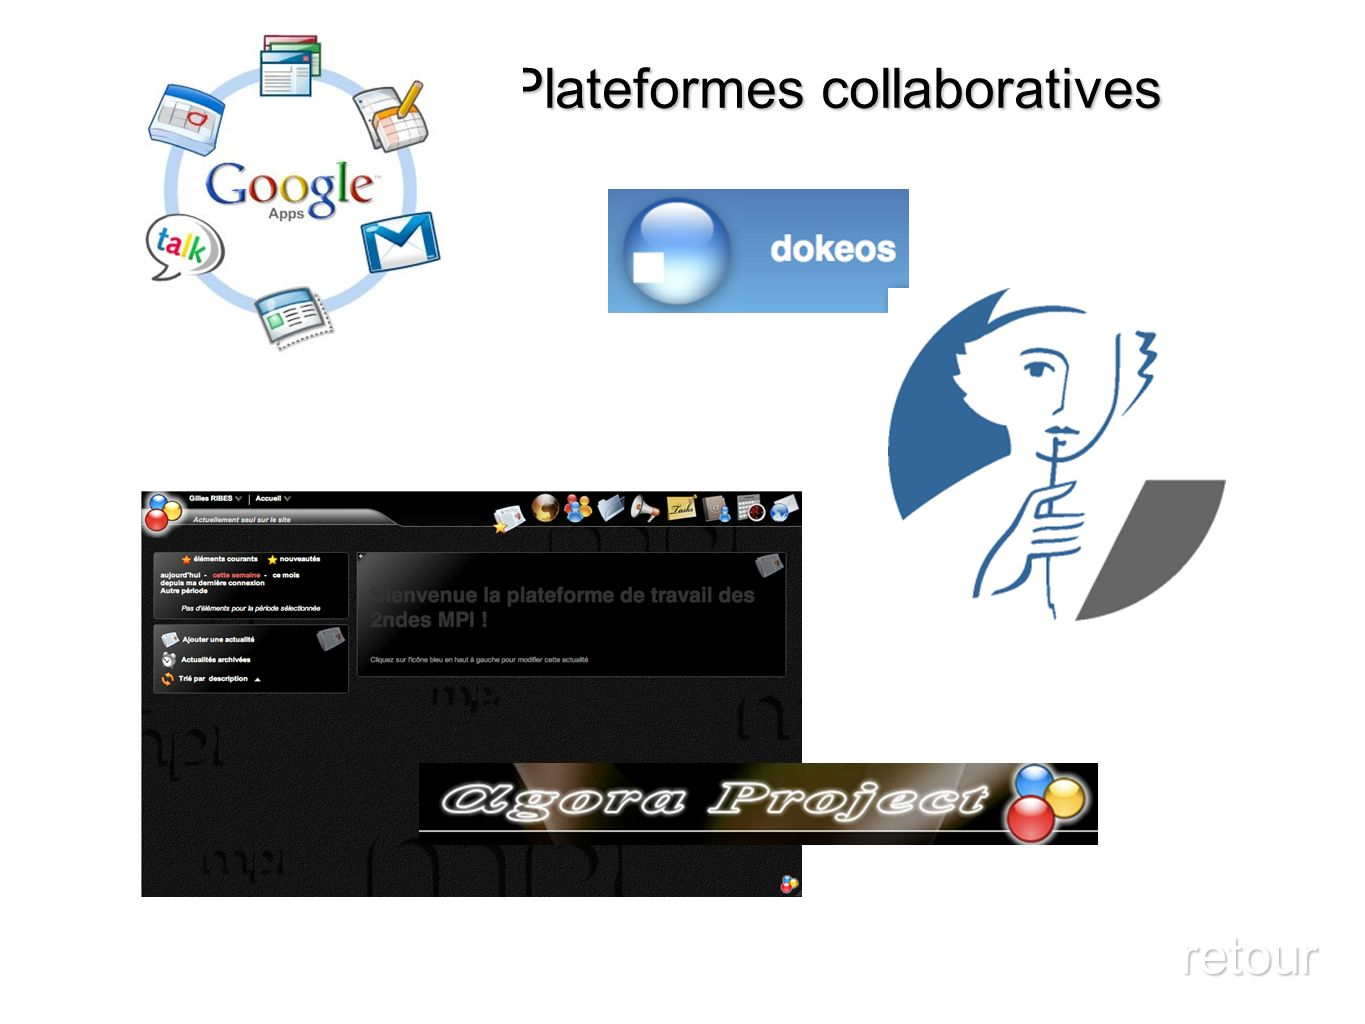 Plateformes collaboratives retour